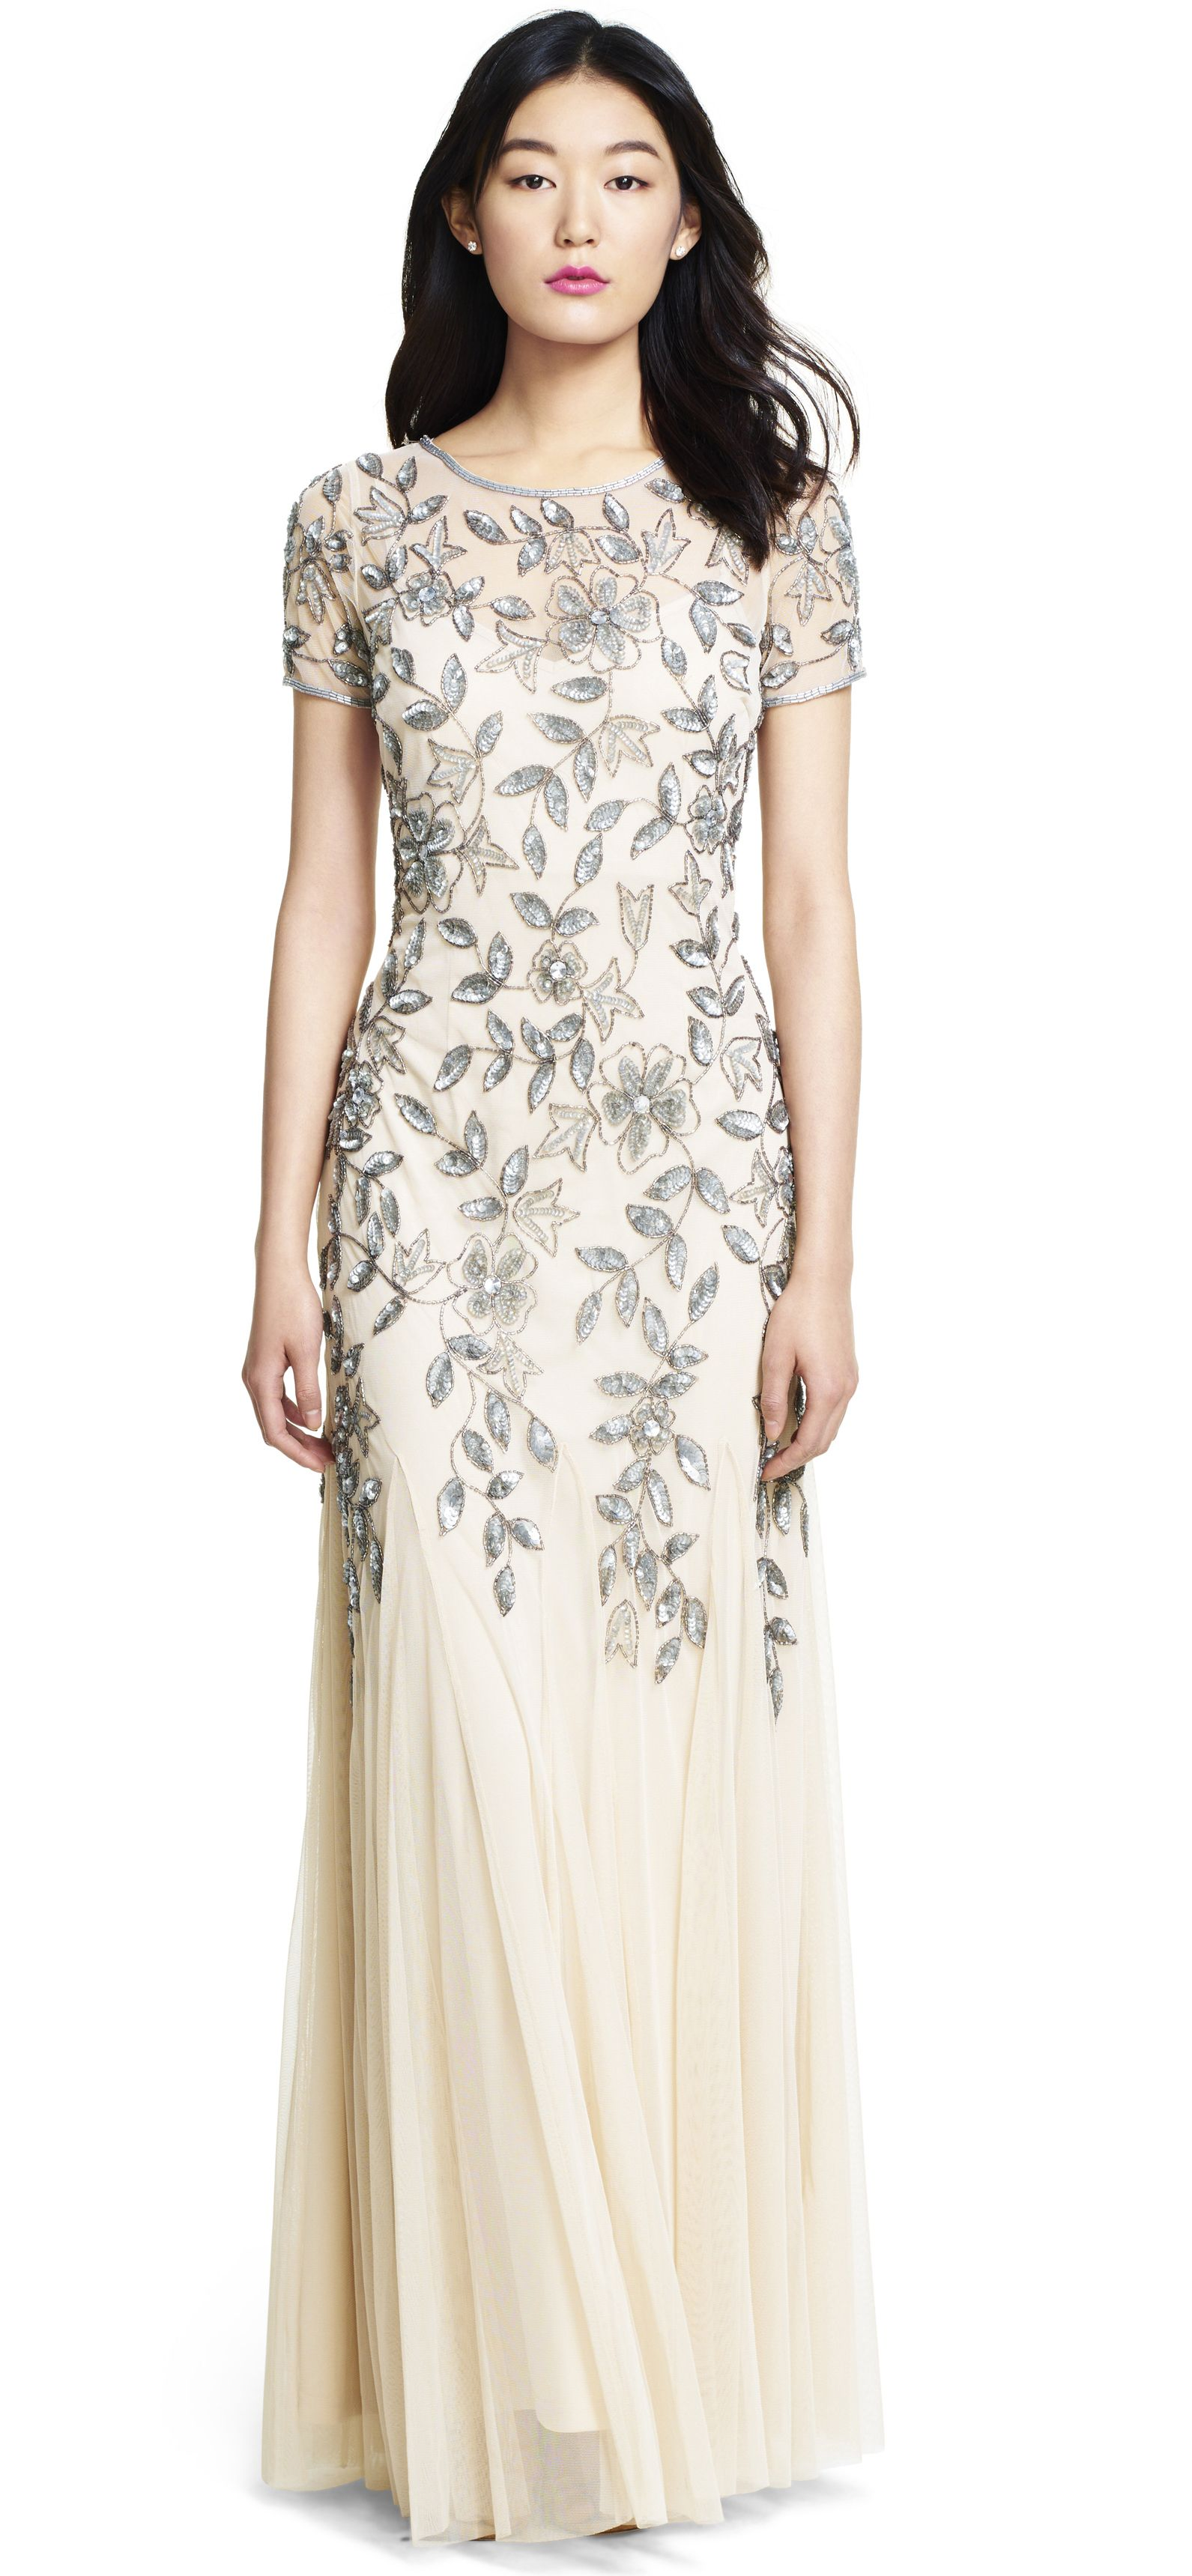 Floral beaded godet gown with short sleeves floral patterns gowns